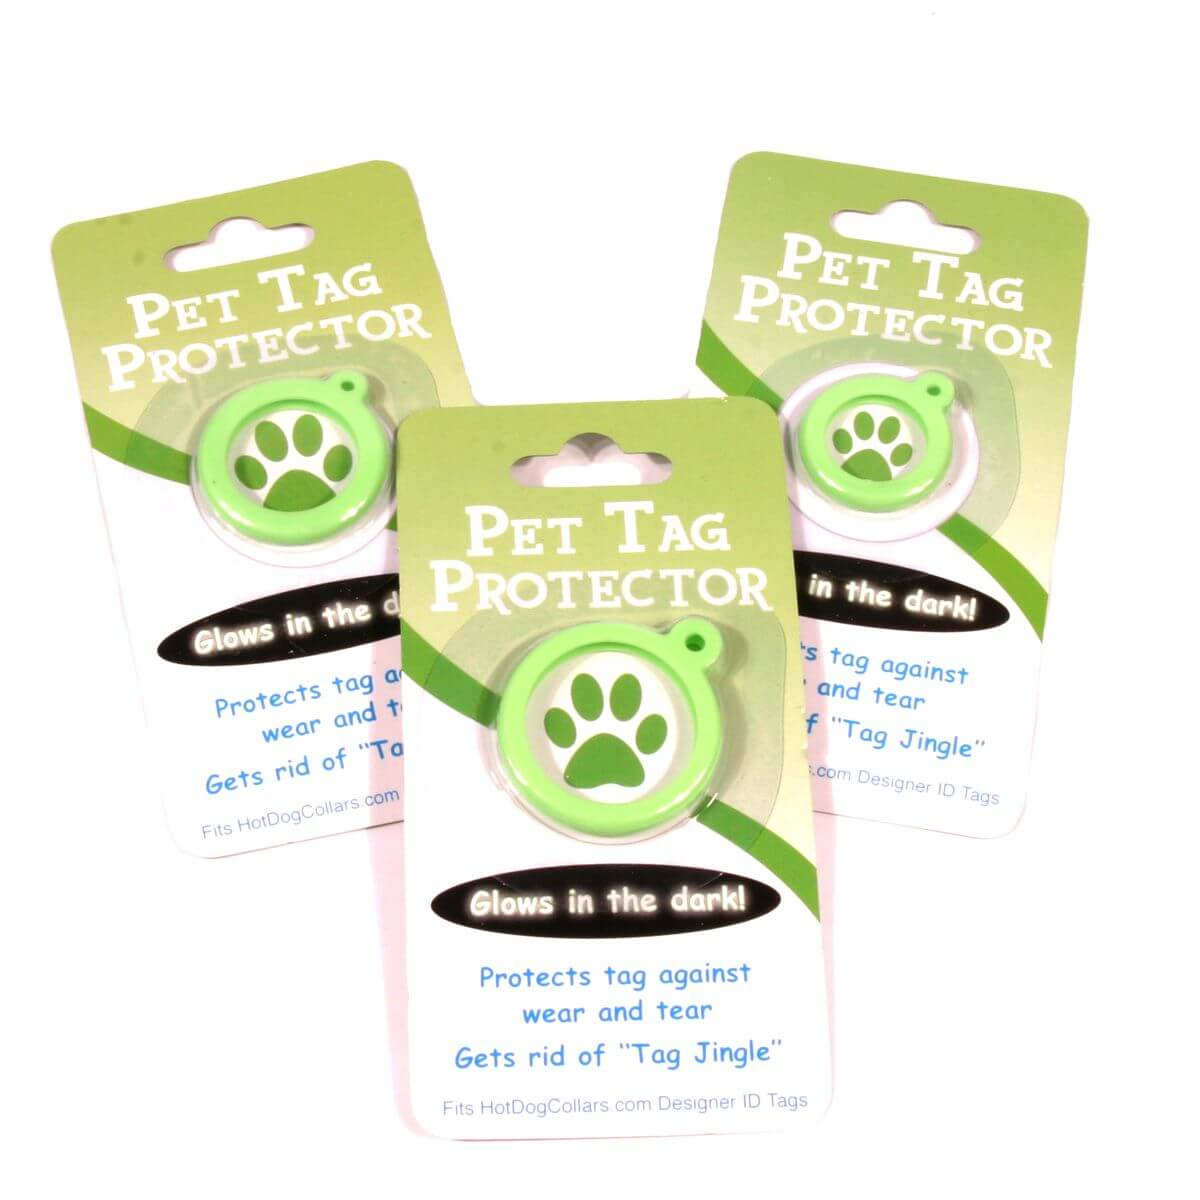 Tag prtoector for your green daisy custom pet id tag